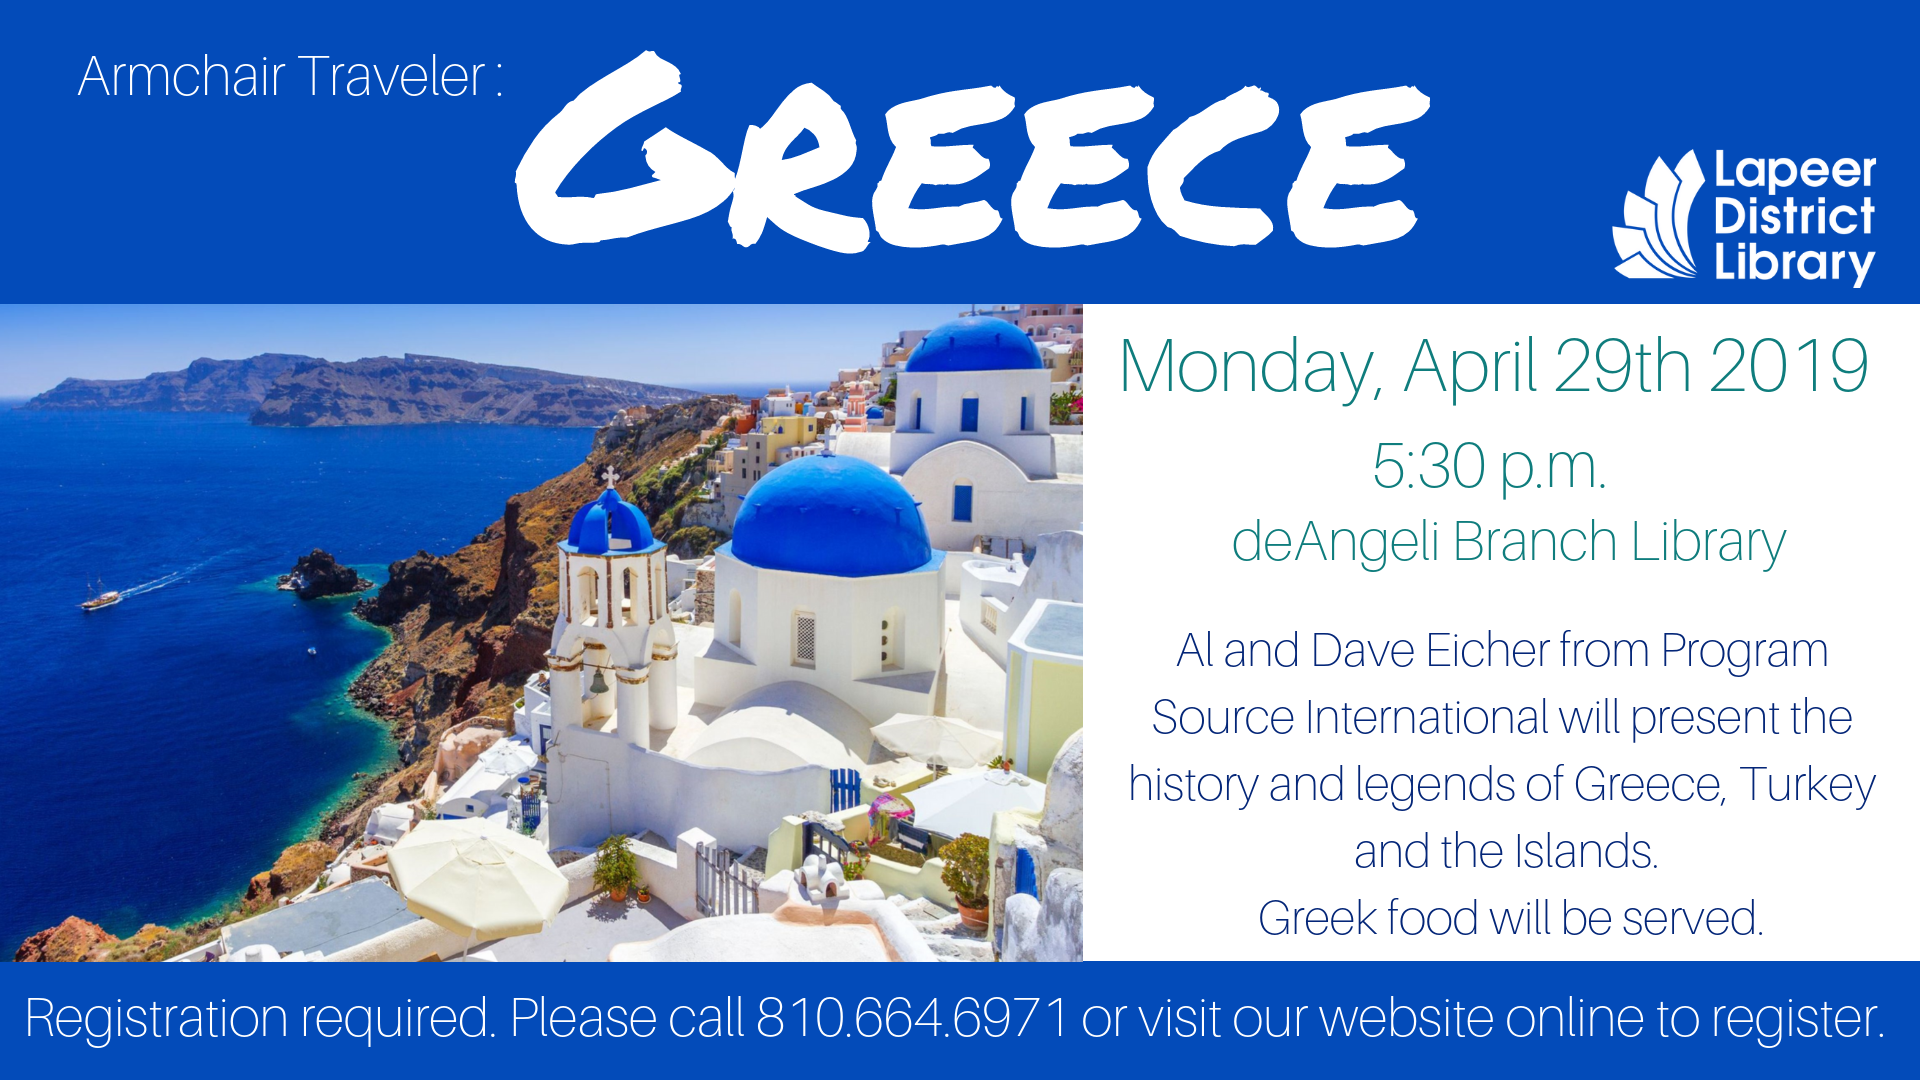 Armchair Traveler: Greece